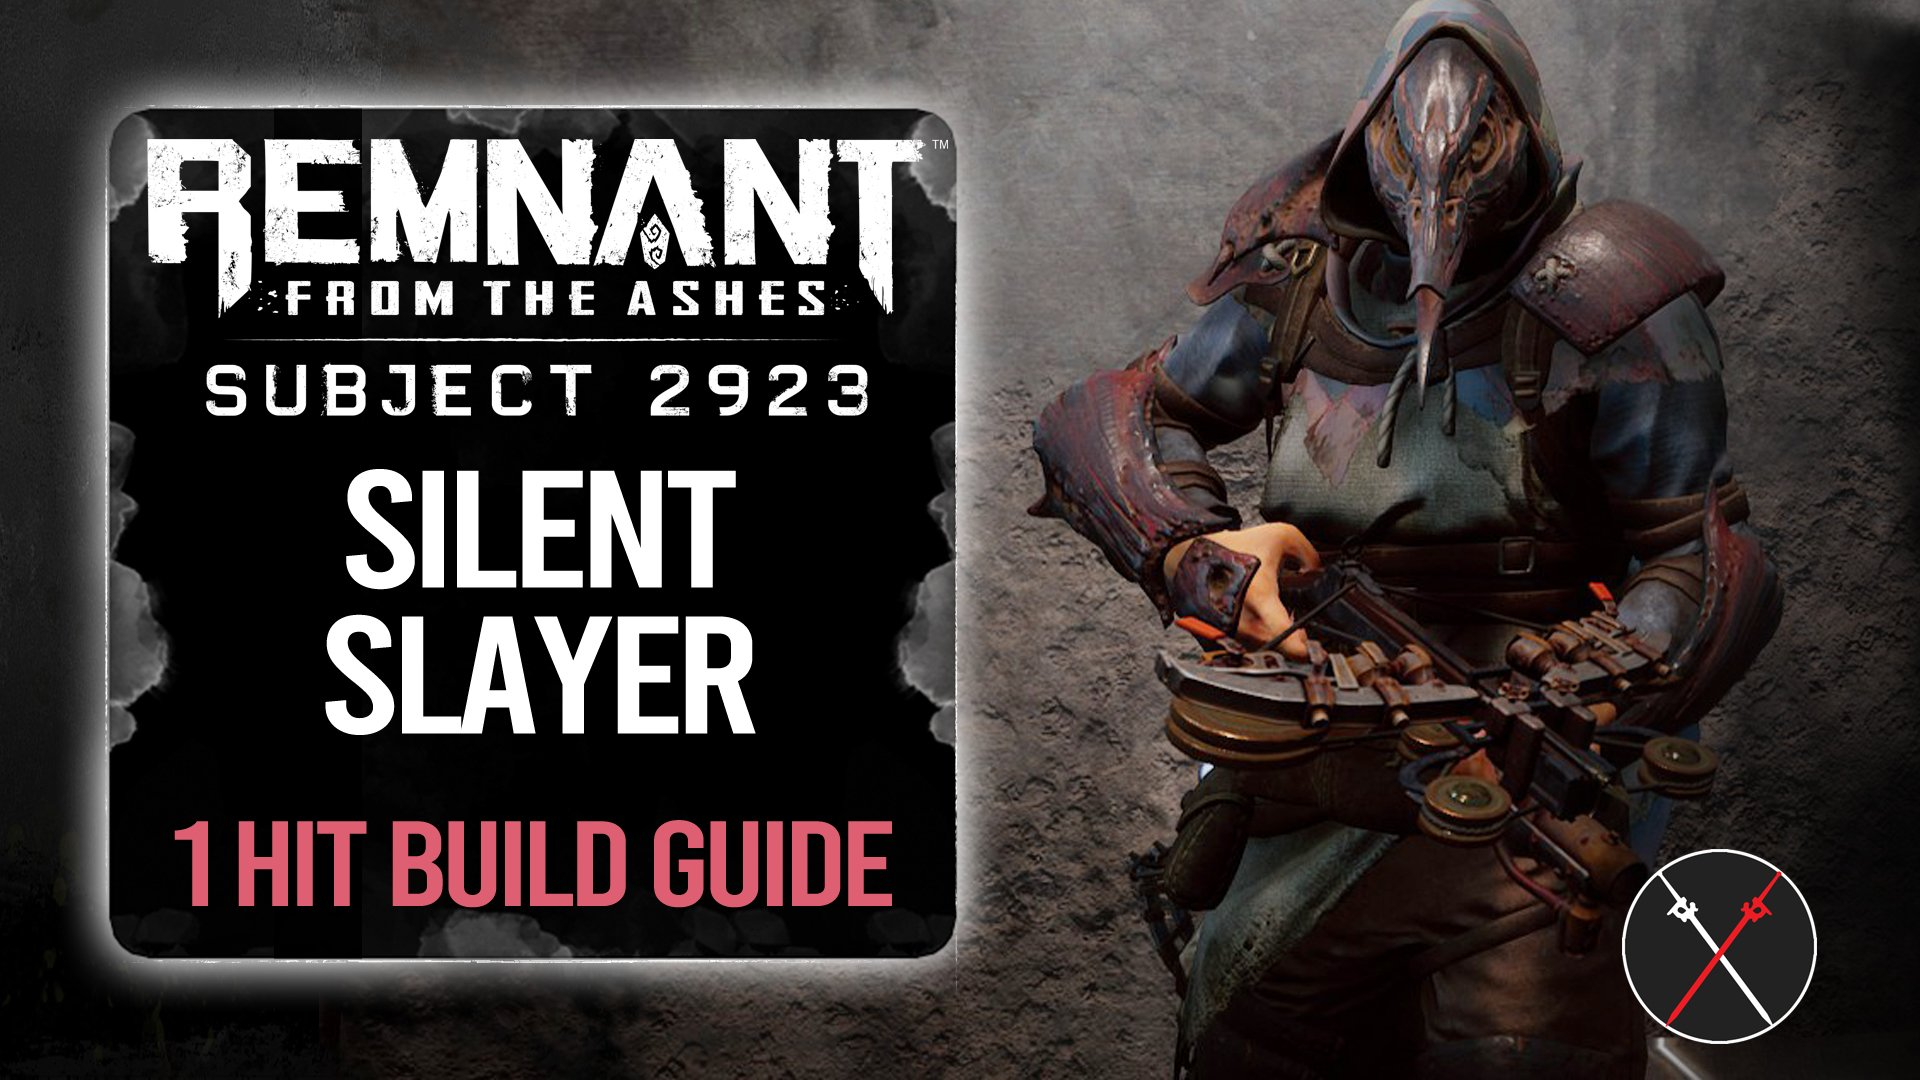 silent-slayer-one-hit-build-guide-remnant-from-the-ashes-rapid-fire